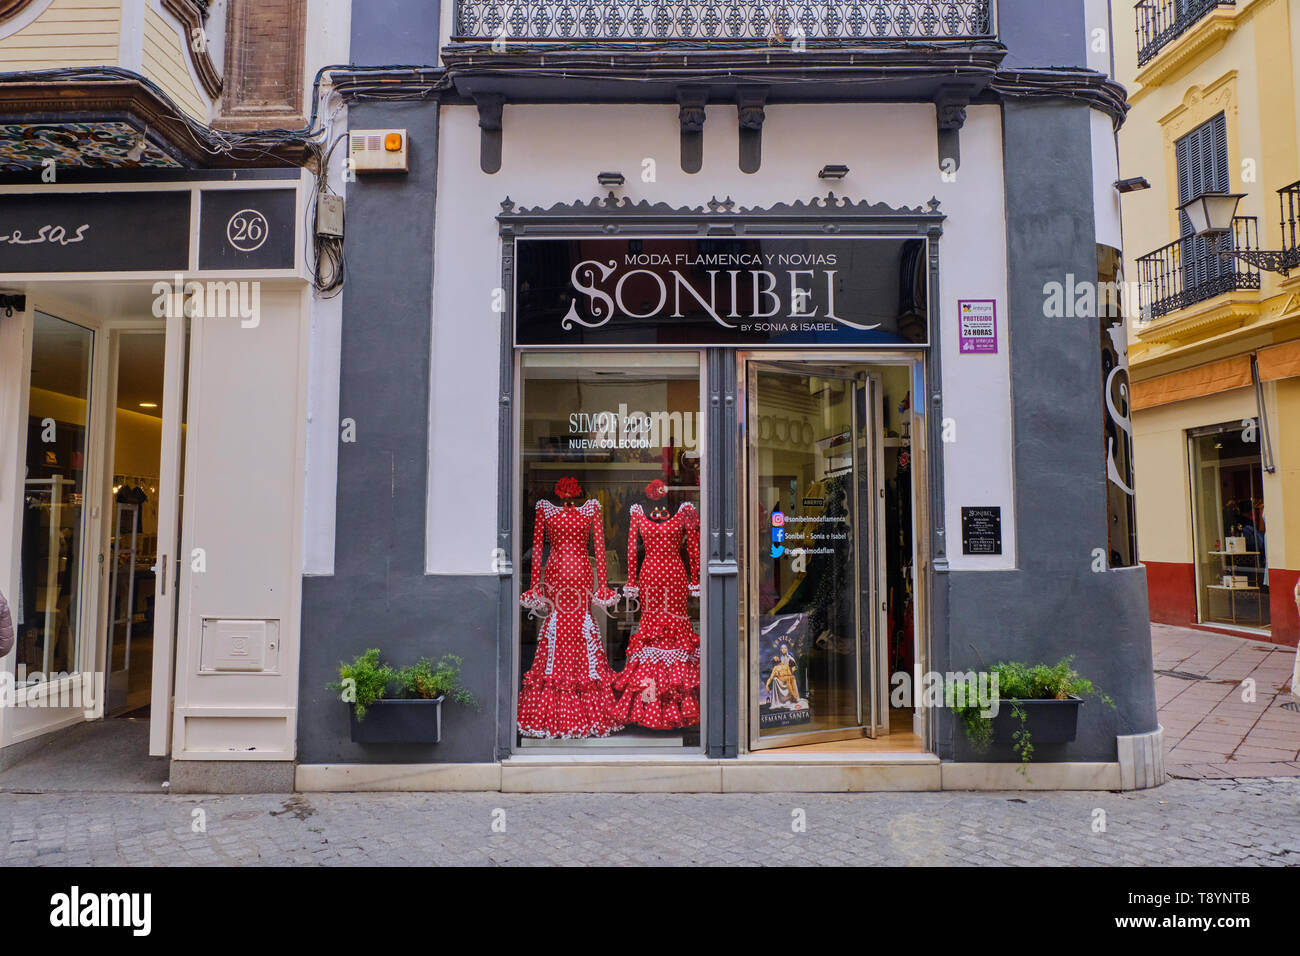 April 2019 Typical flamenco dress Shop in Seville, Andalusia, Spain - Stock Image